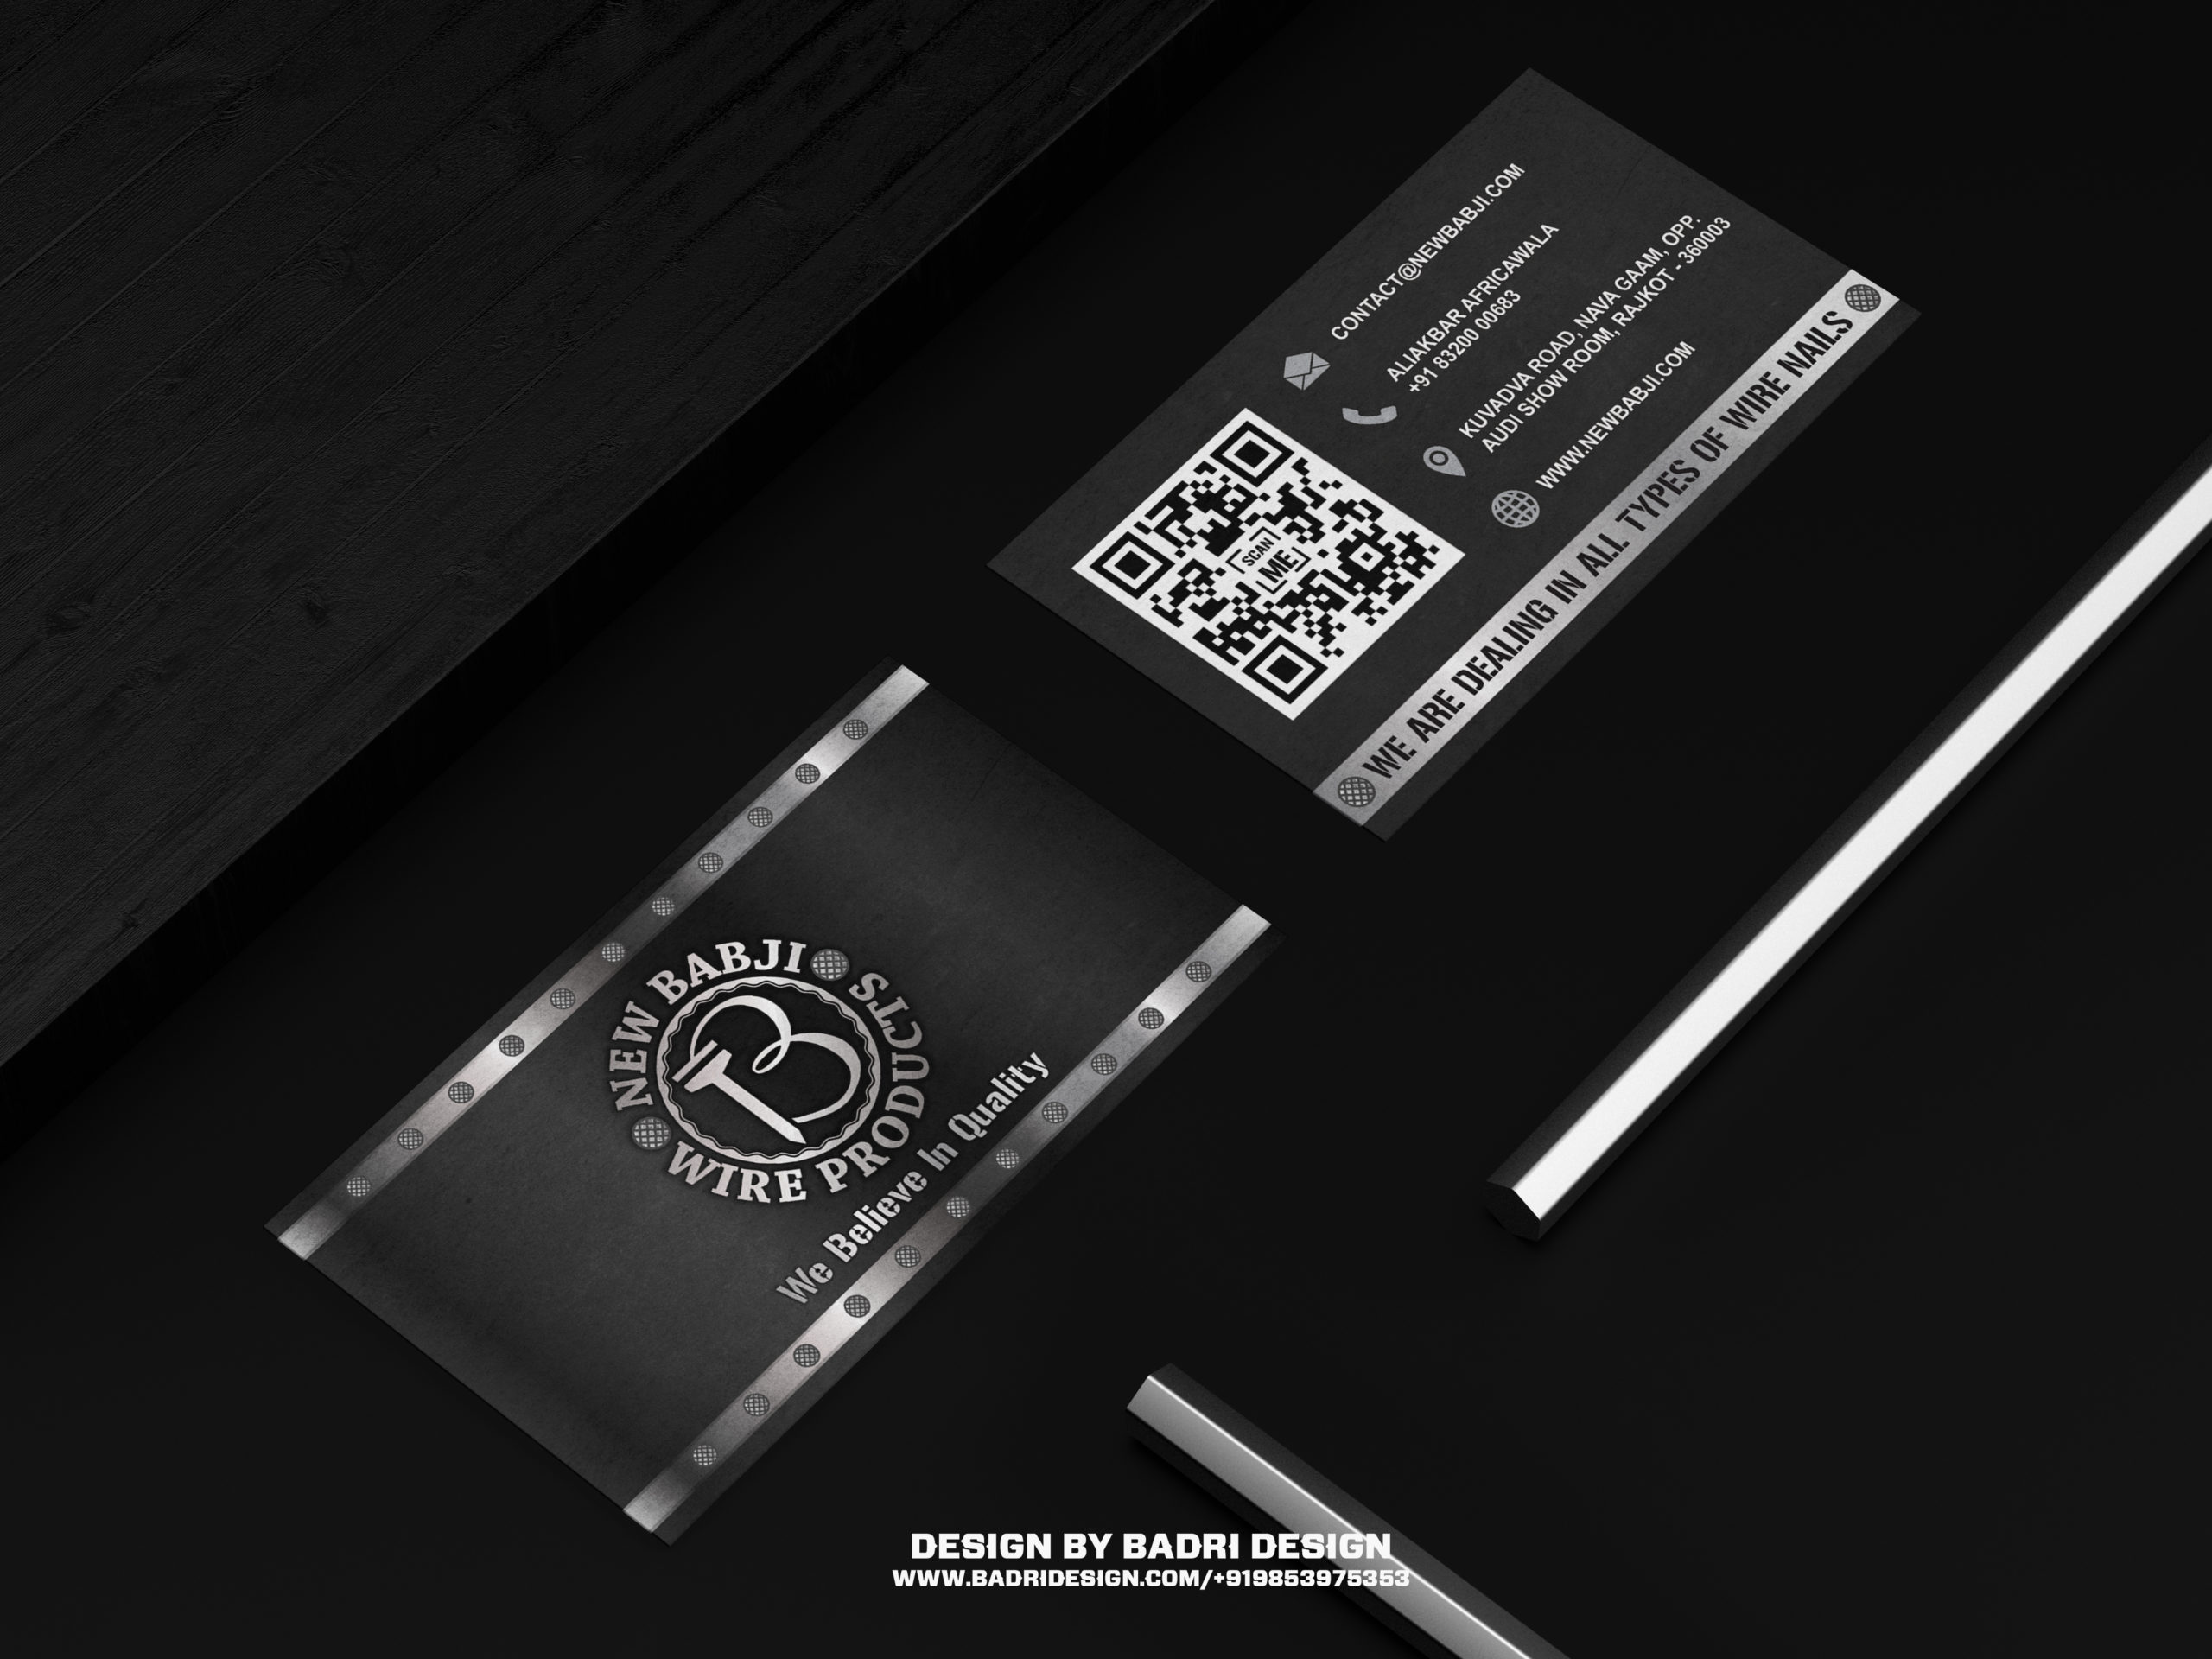 Manufacture of wire and nails company business card design by Badri Design